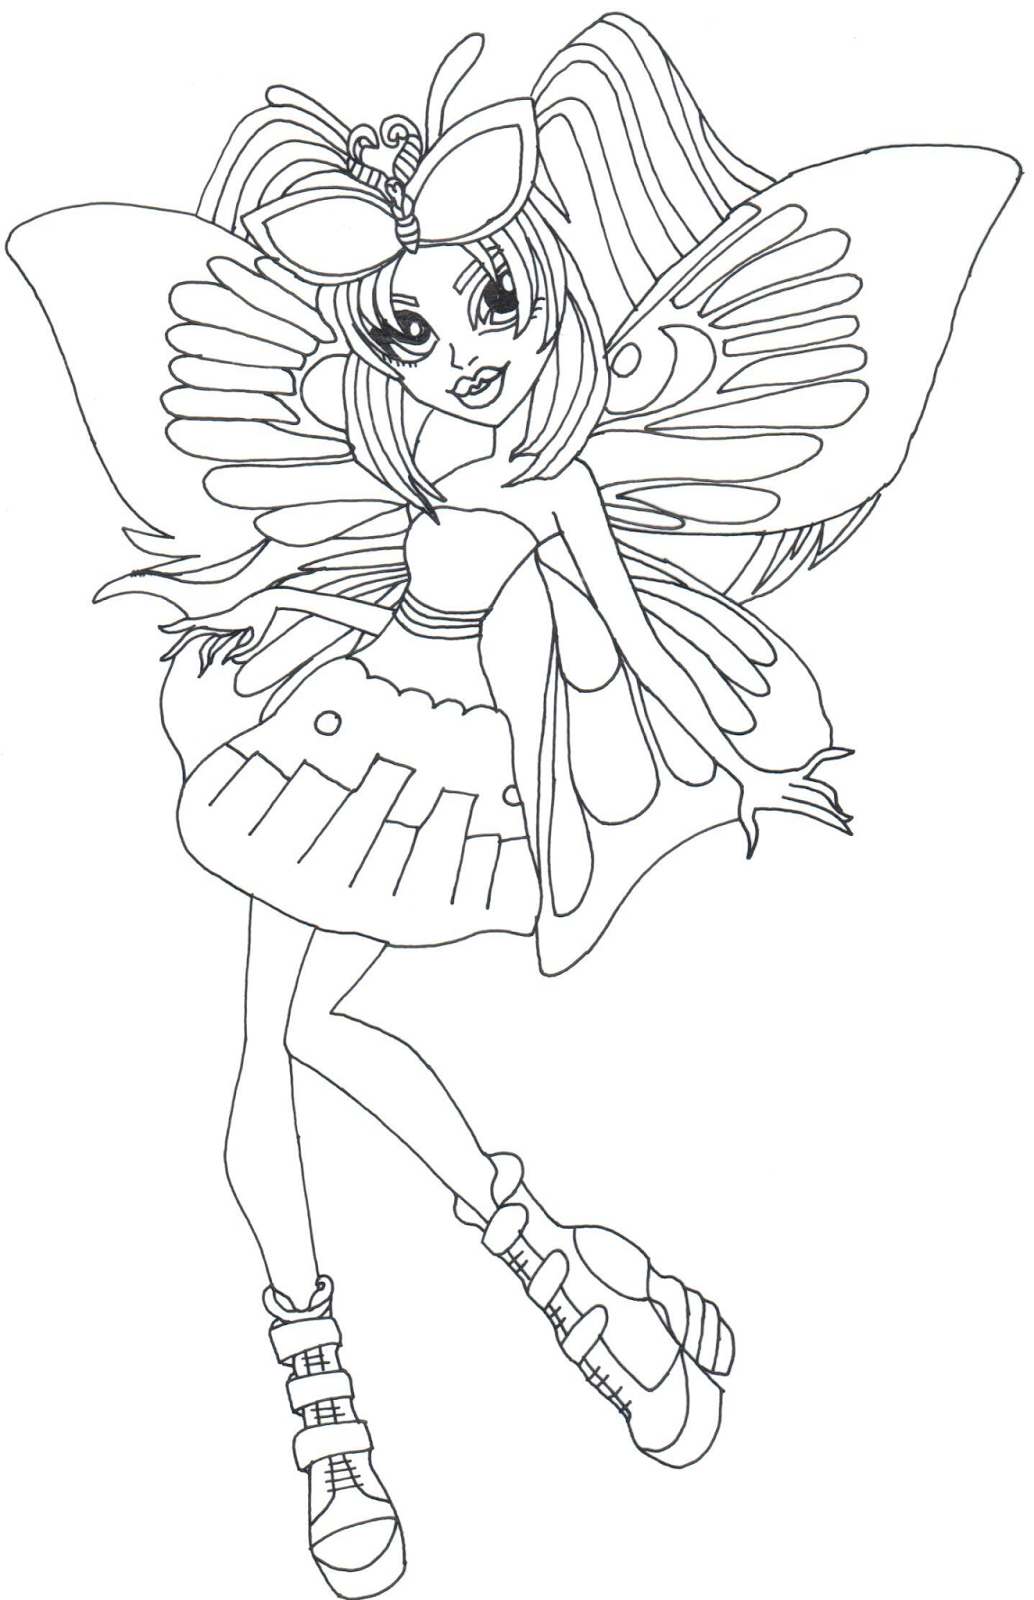 Free Printable Monster High Coloring Pages: Luna Mothews ...